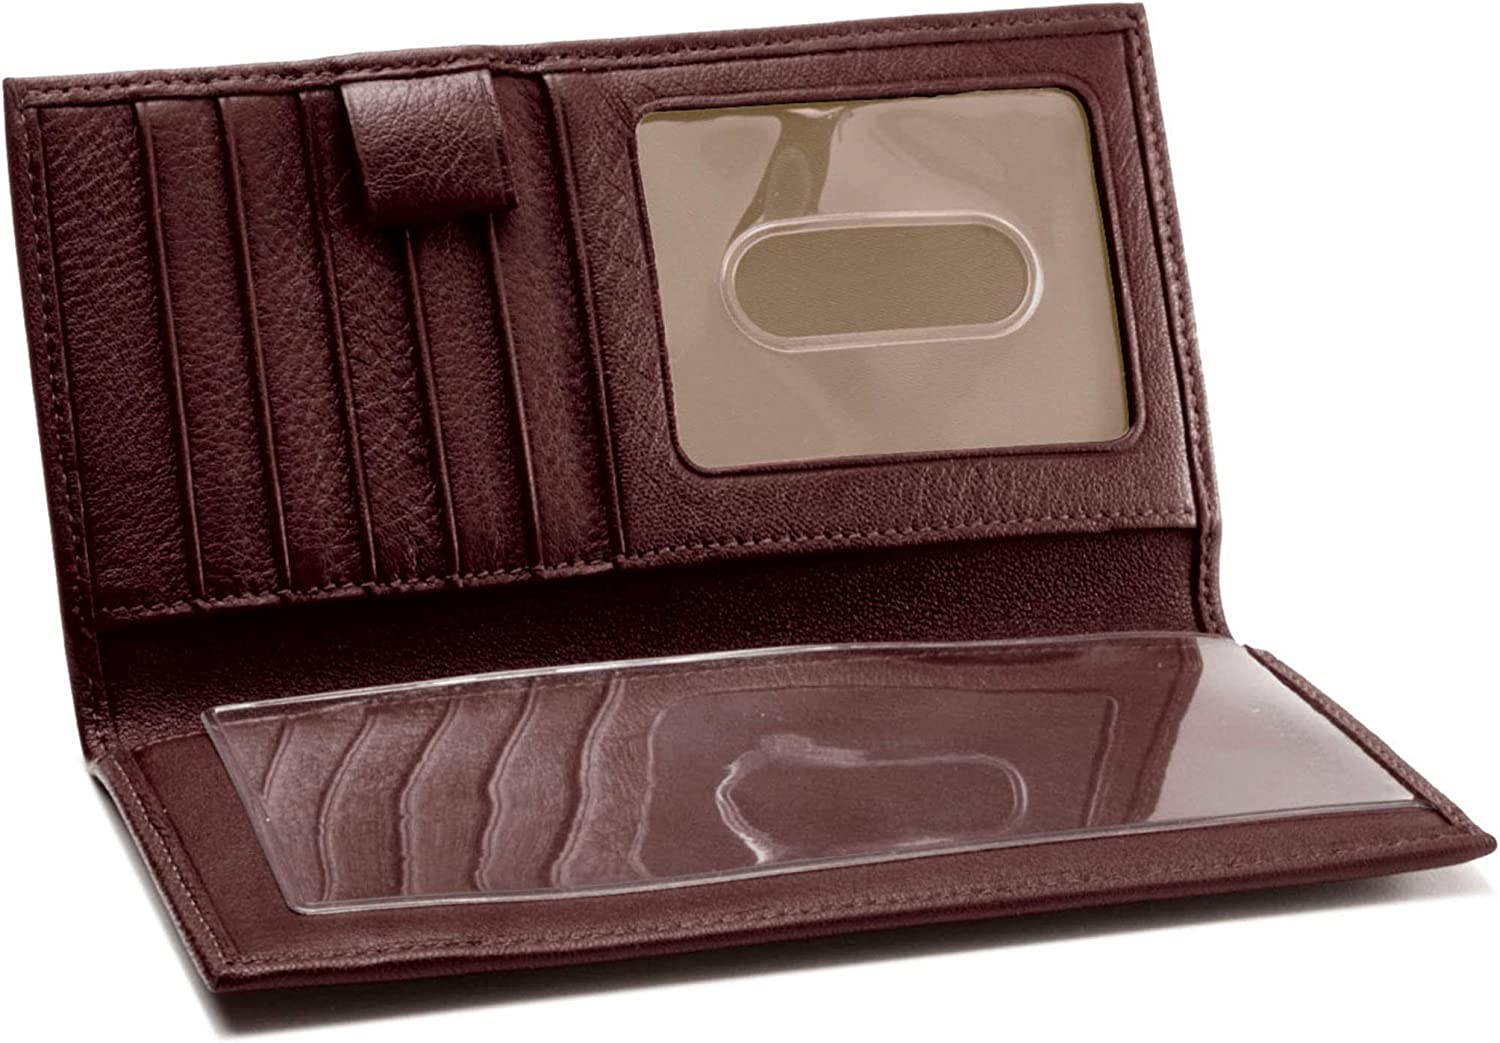 Leatherology Checkbook /& Card Holder with Divider and Pen Loop